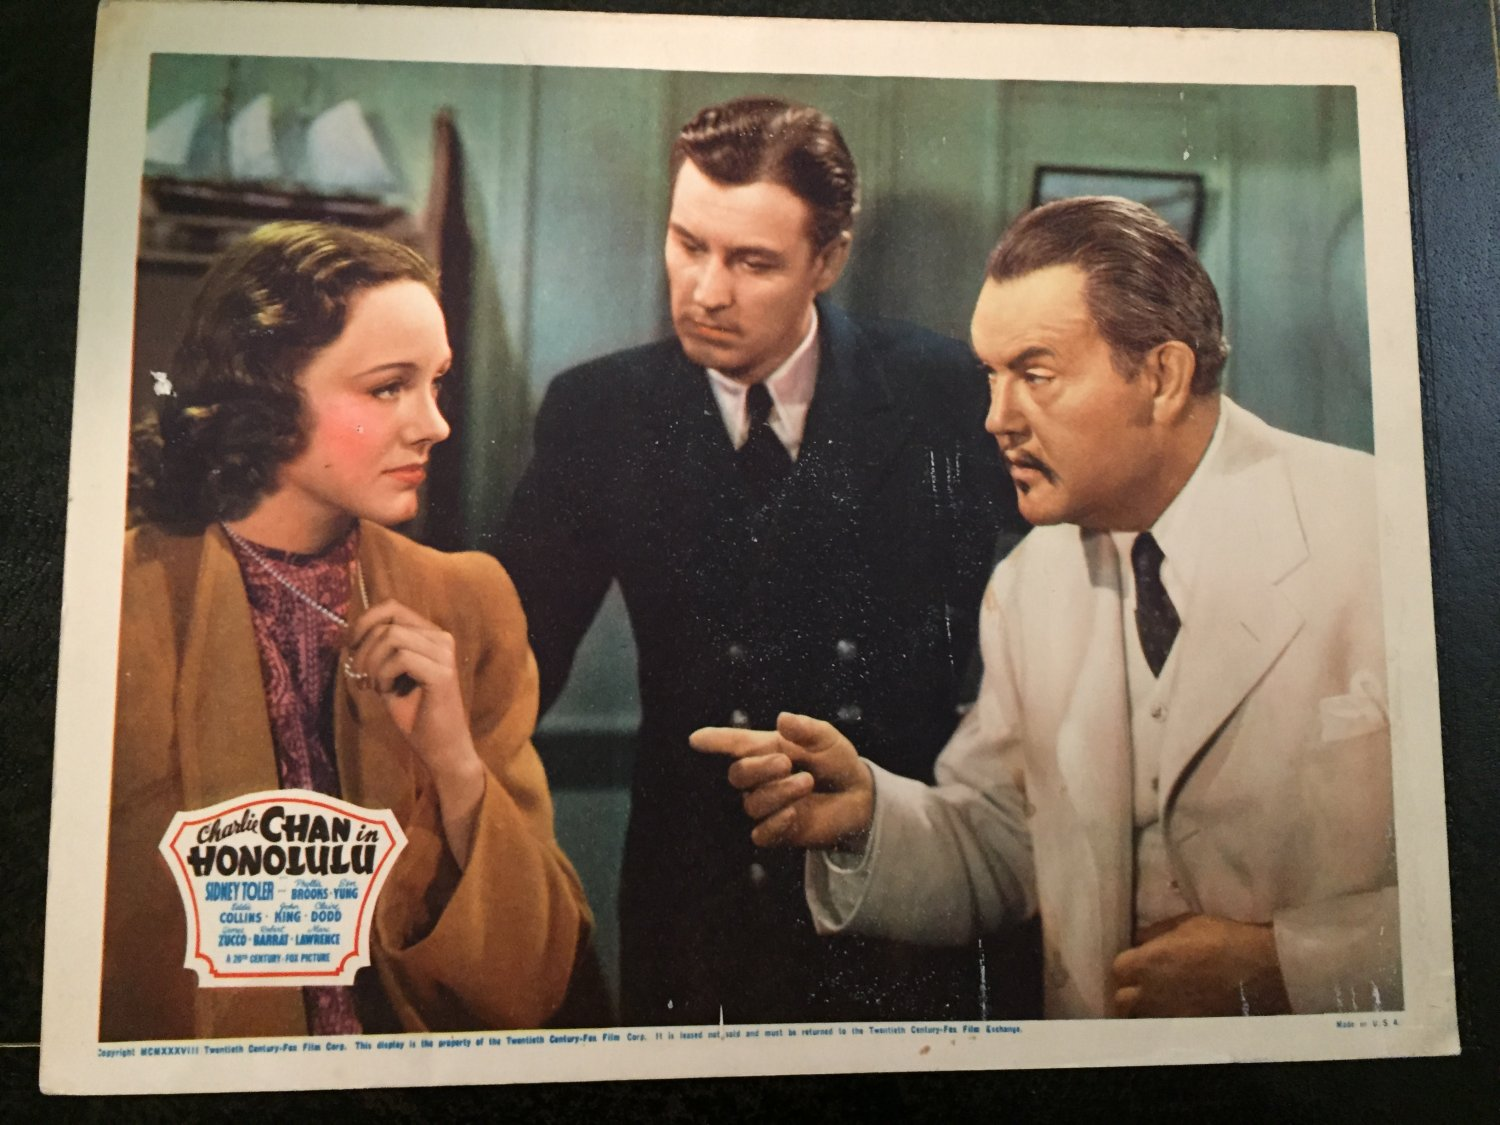 CHARLIE CHAN in HONOLULU LOBBY CARD, 20TH CENTURY FOX 1938, SIDNEY TOLER